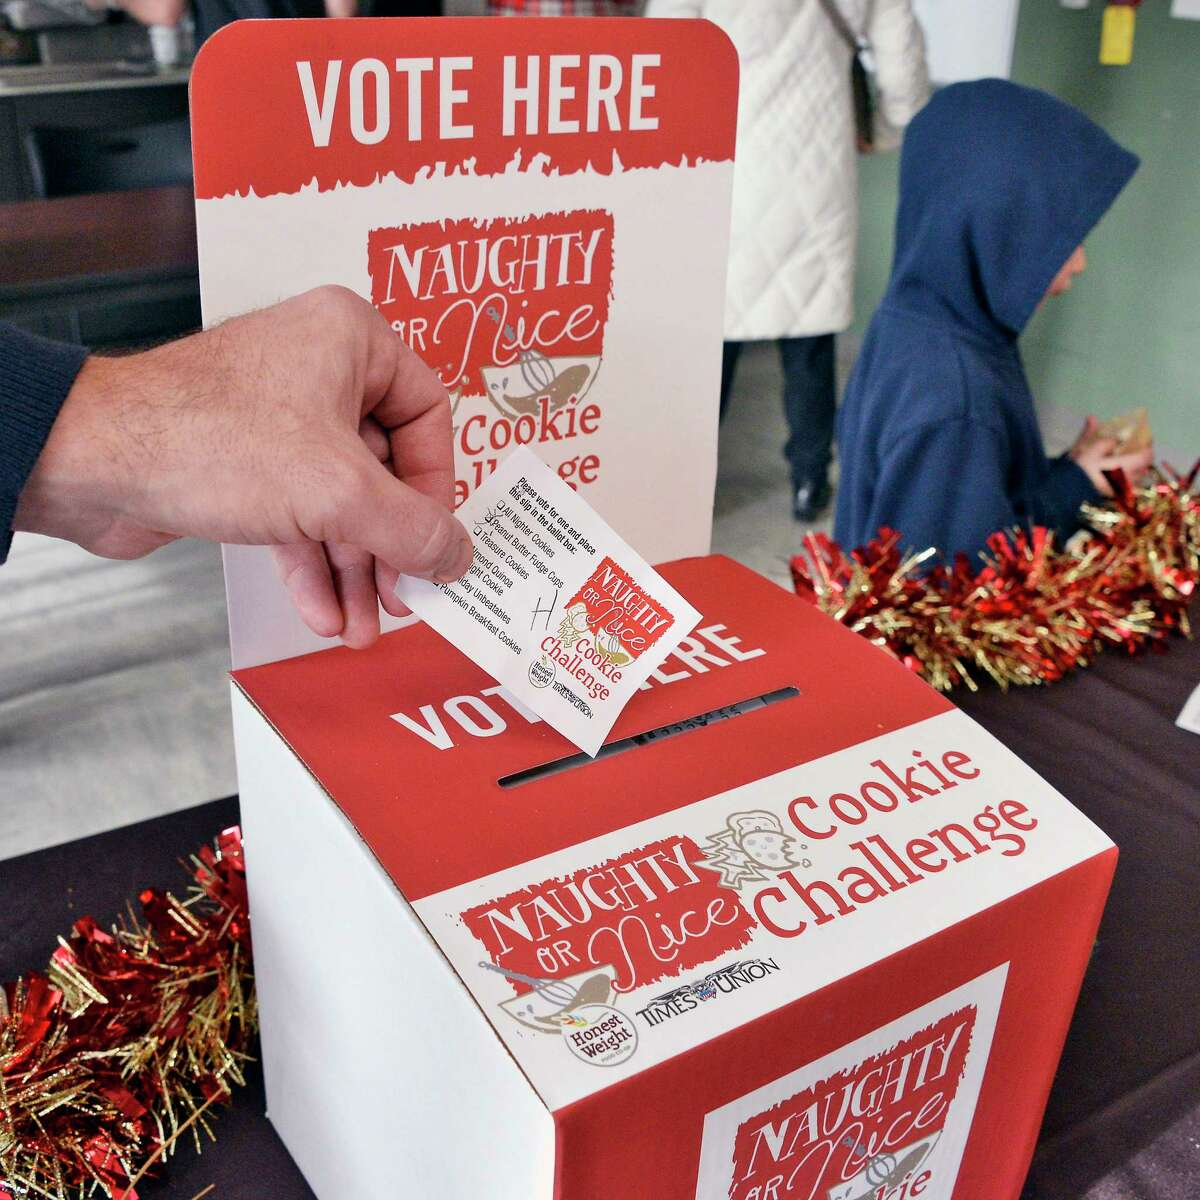 Participants cast their ballots during the Naughty or Nice Cookie Challenge at Honest Weight Food Co-op Saturday Dec. 1, 2018 in Albany, NY. (John Carl D'Annibale/Times Union)